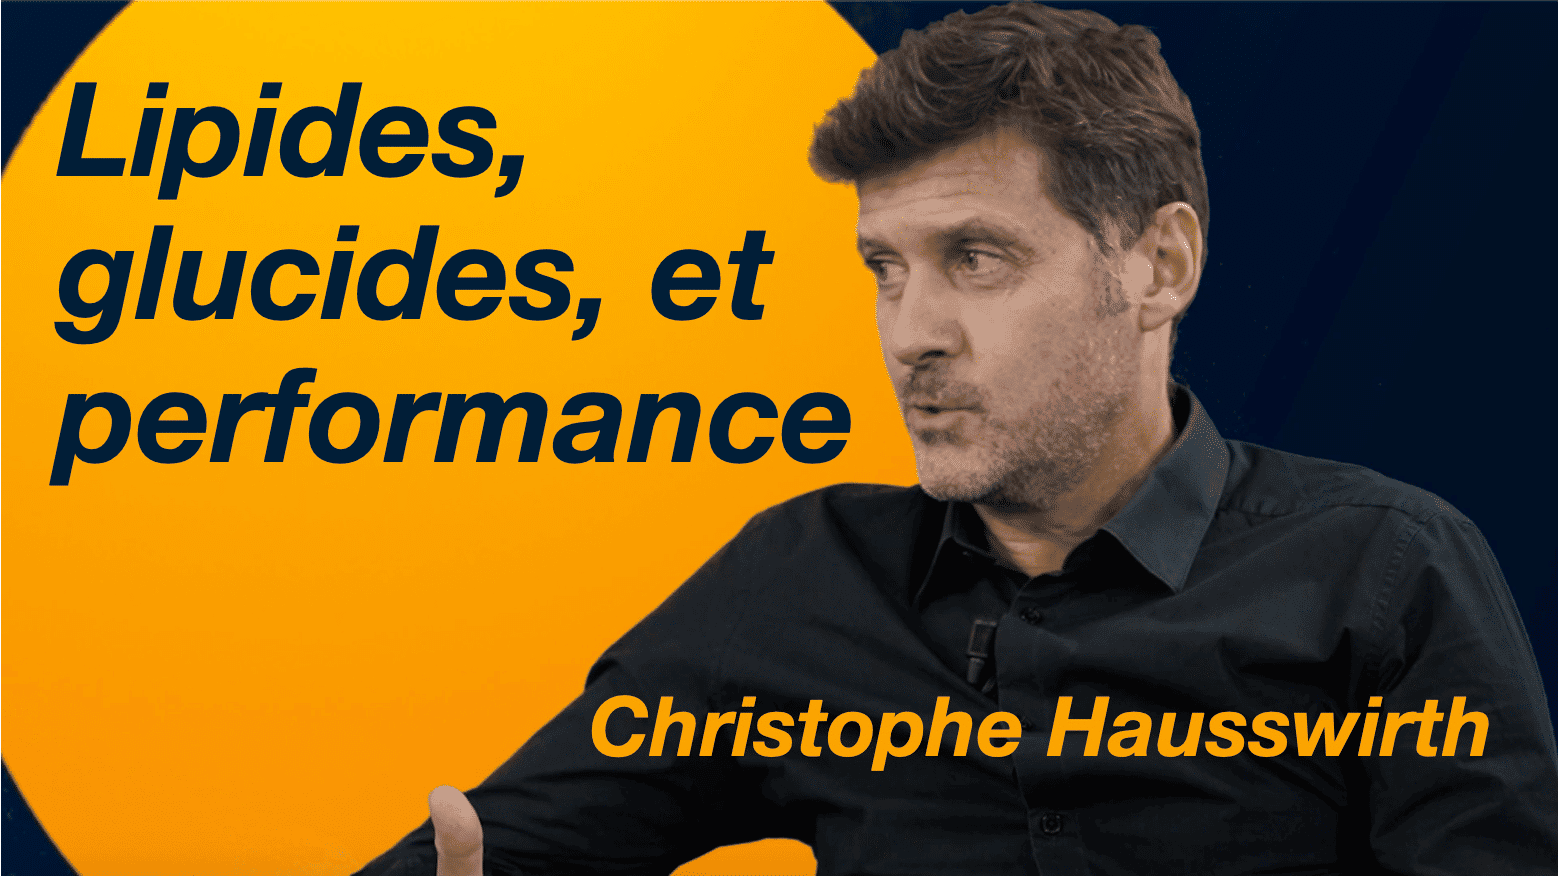 Lipides glucides et performance